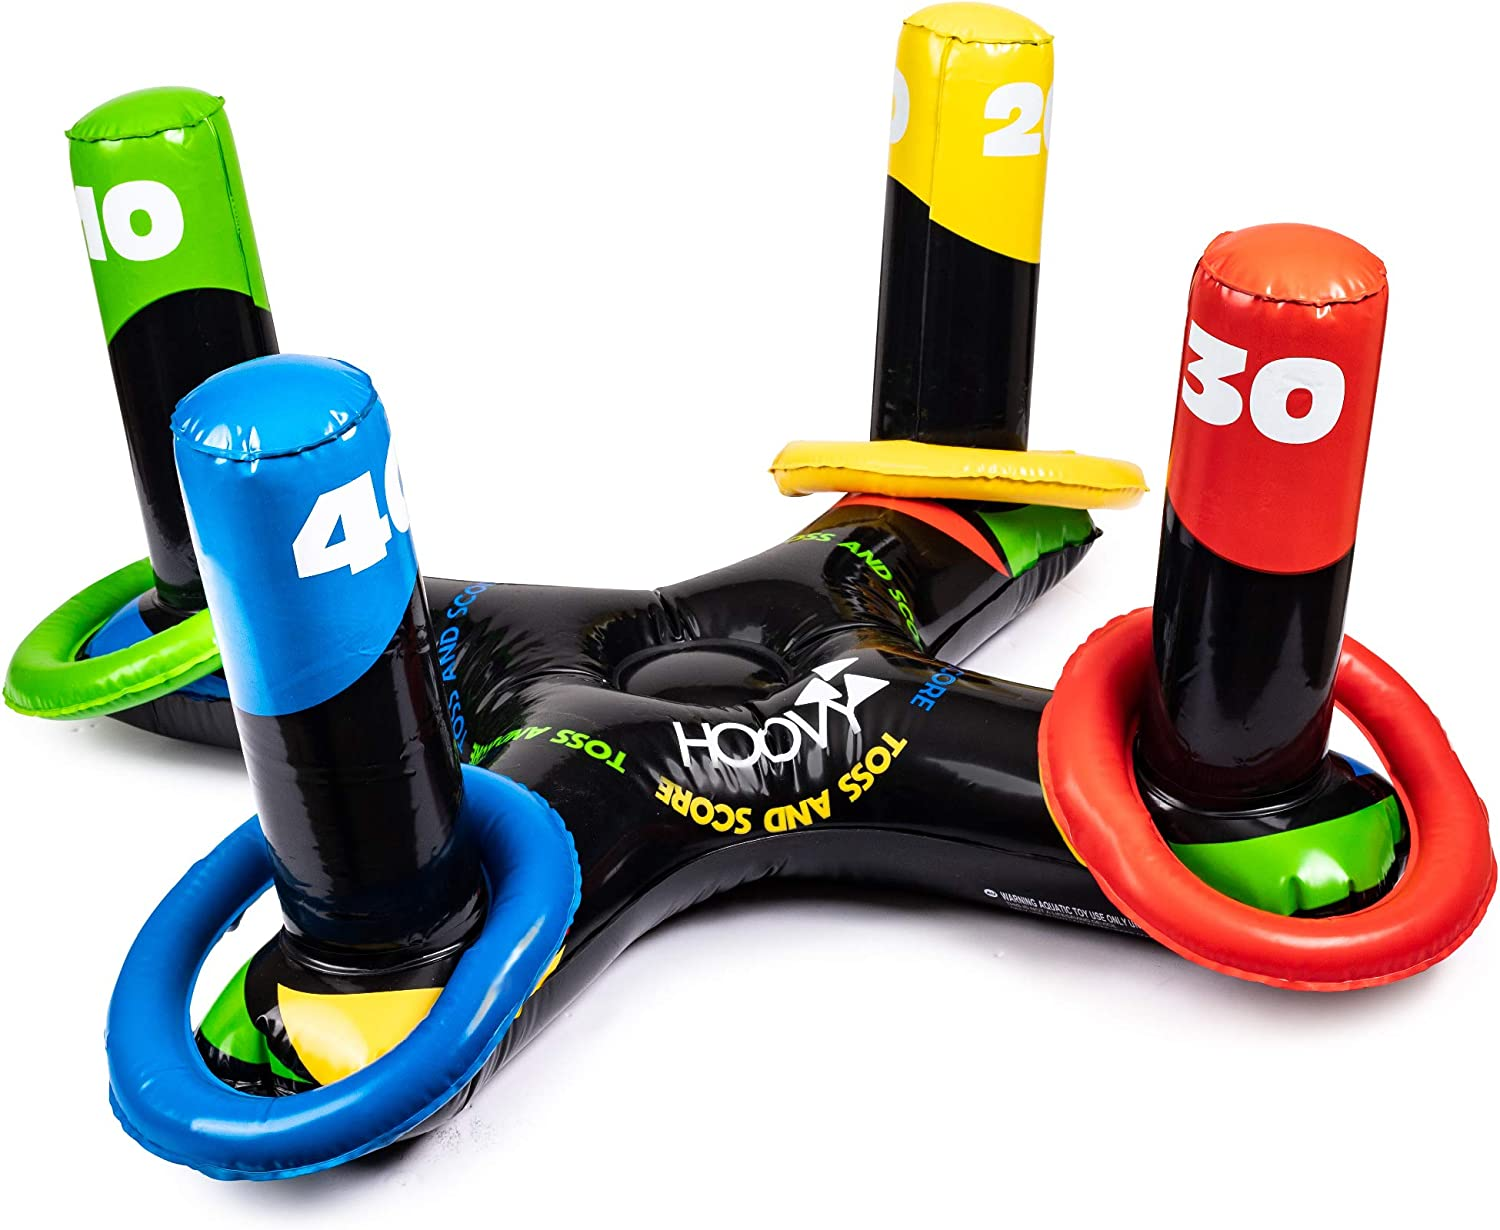 Hoovy Inflatable Pool Ring Toss Game | Inflatable Swimming Pool Water Game | Ring Game with 4 Ring Toss Rings | Throwing Ring Play for Multiplayer | Party Game for Indoor/Outdoor